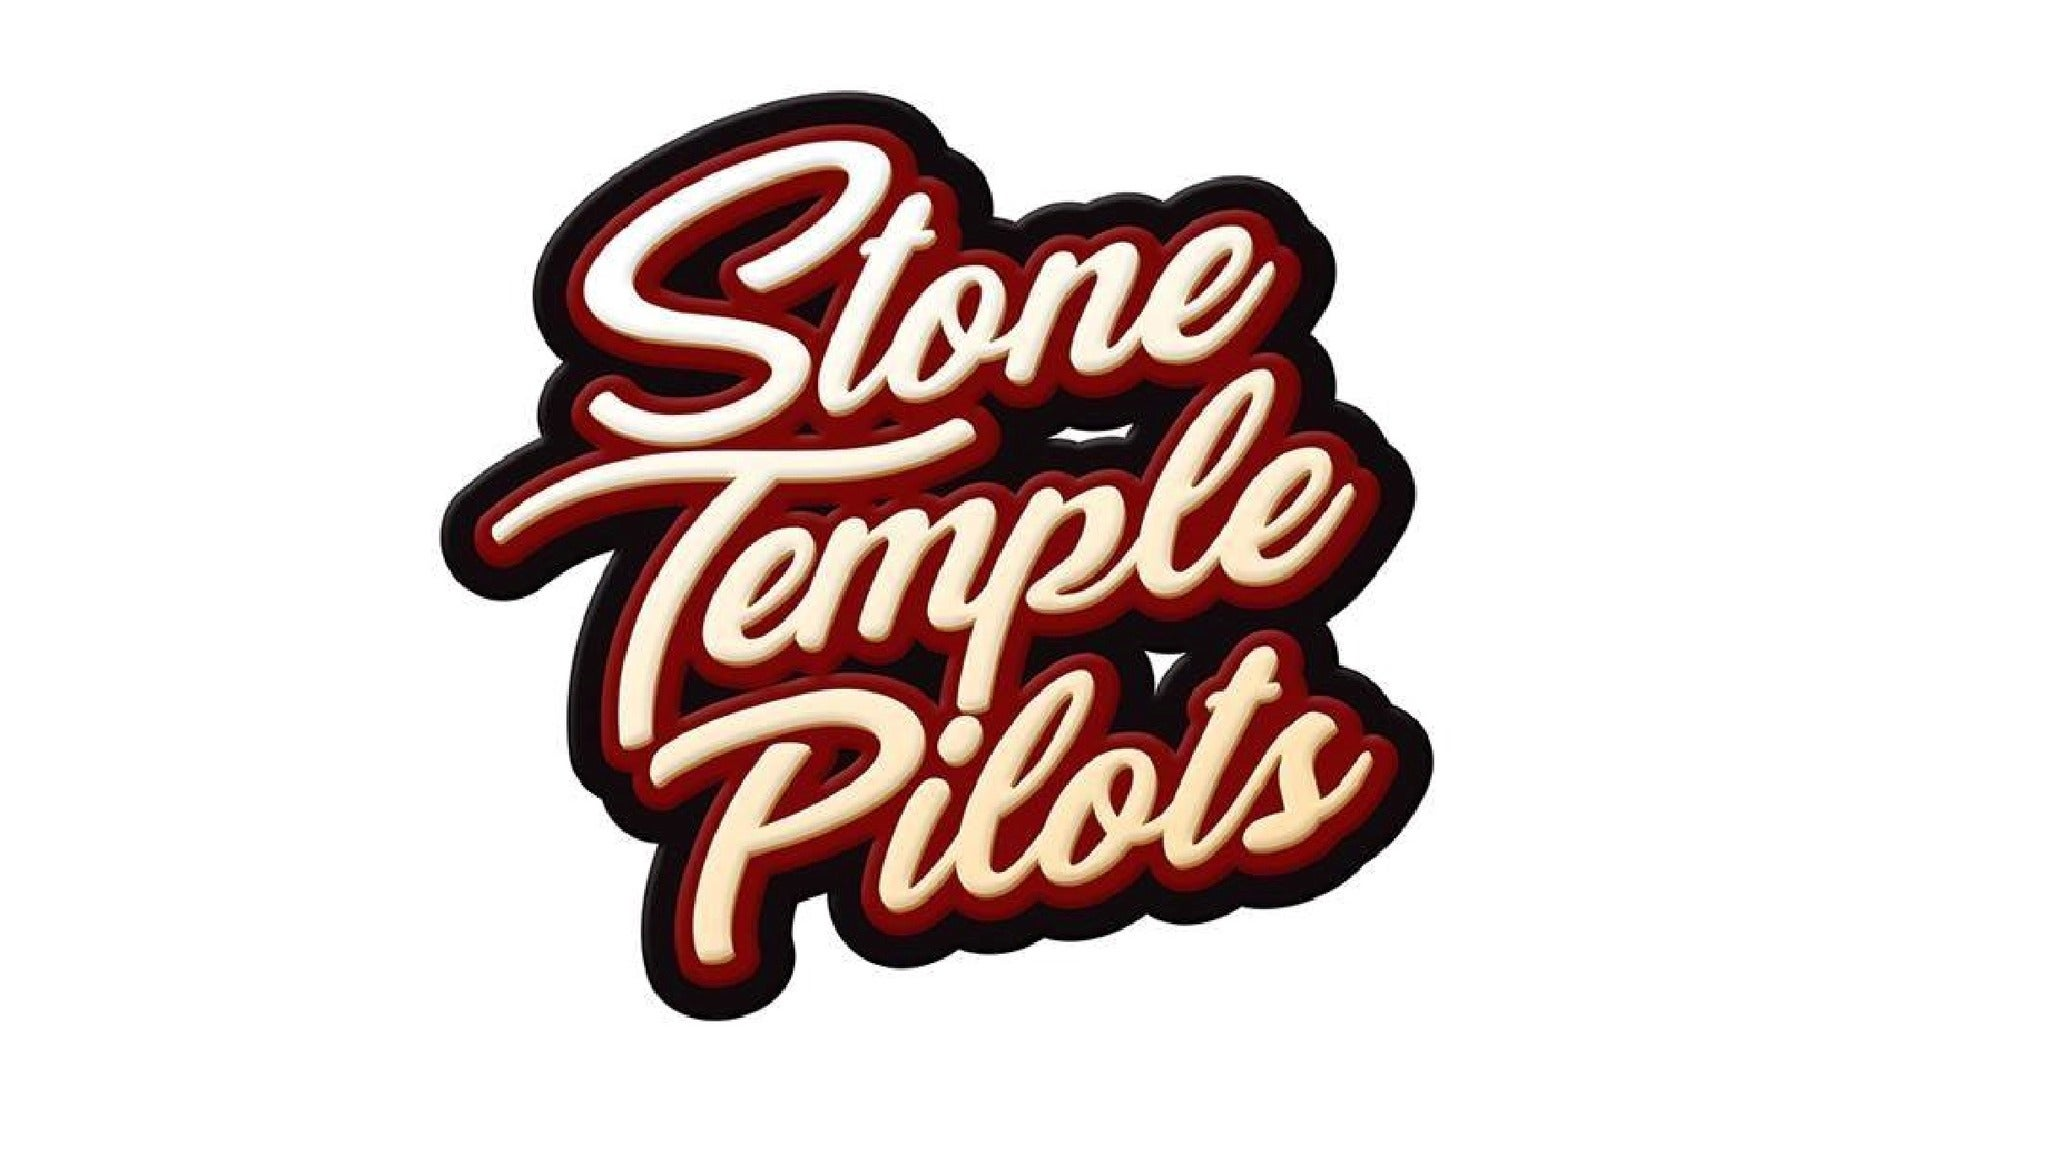 Stone Temple Pilots at Murat Theatre